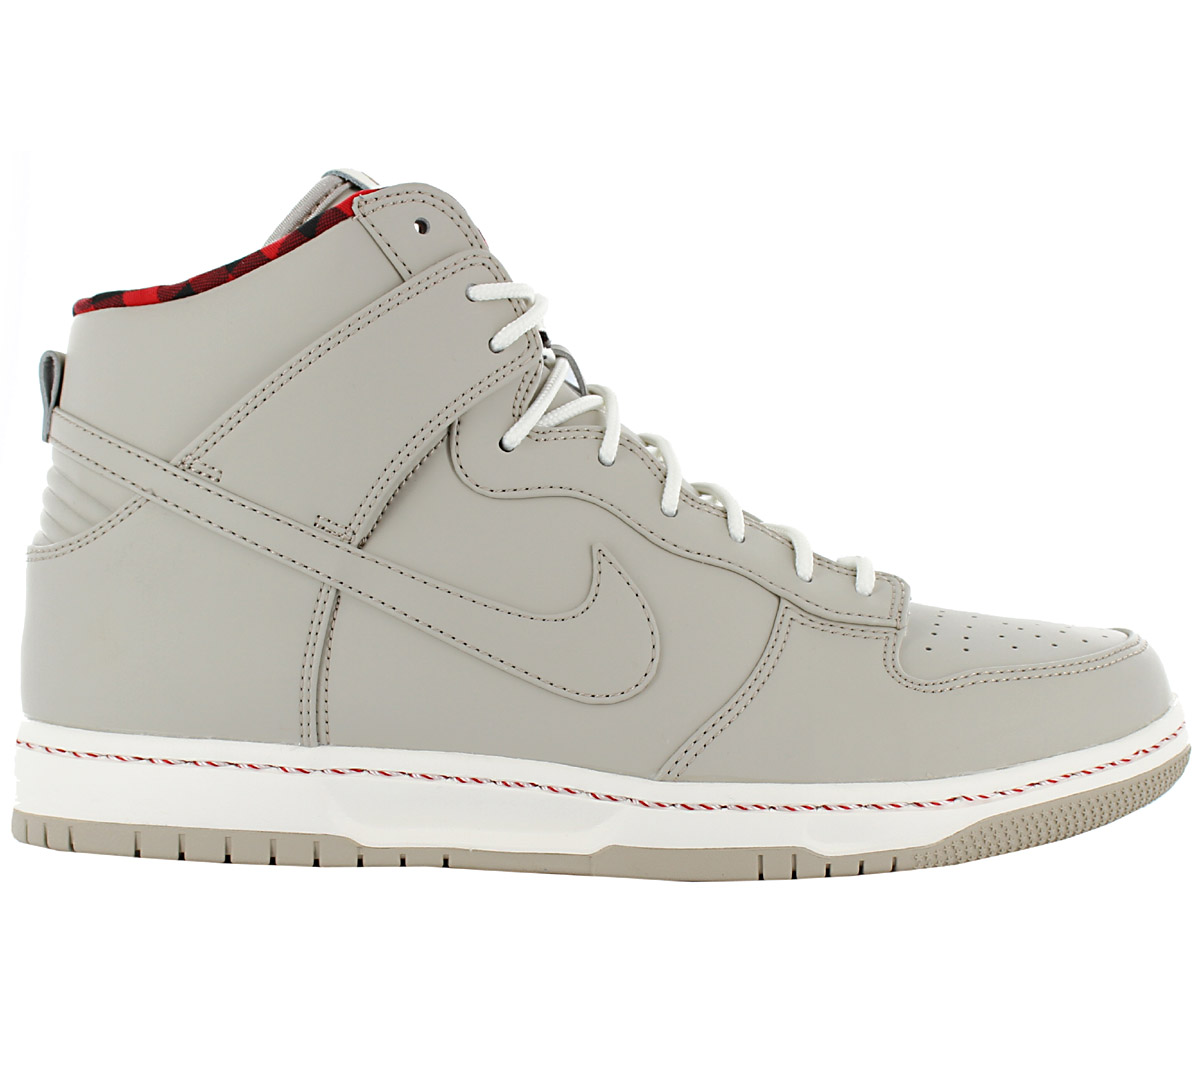 designer fashion 915ee 9c29b Nike Dunk Ultra Sneaker Mens Shoes mid High Trainers Grey New 845055 ...